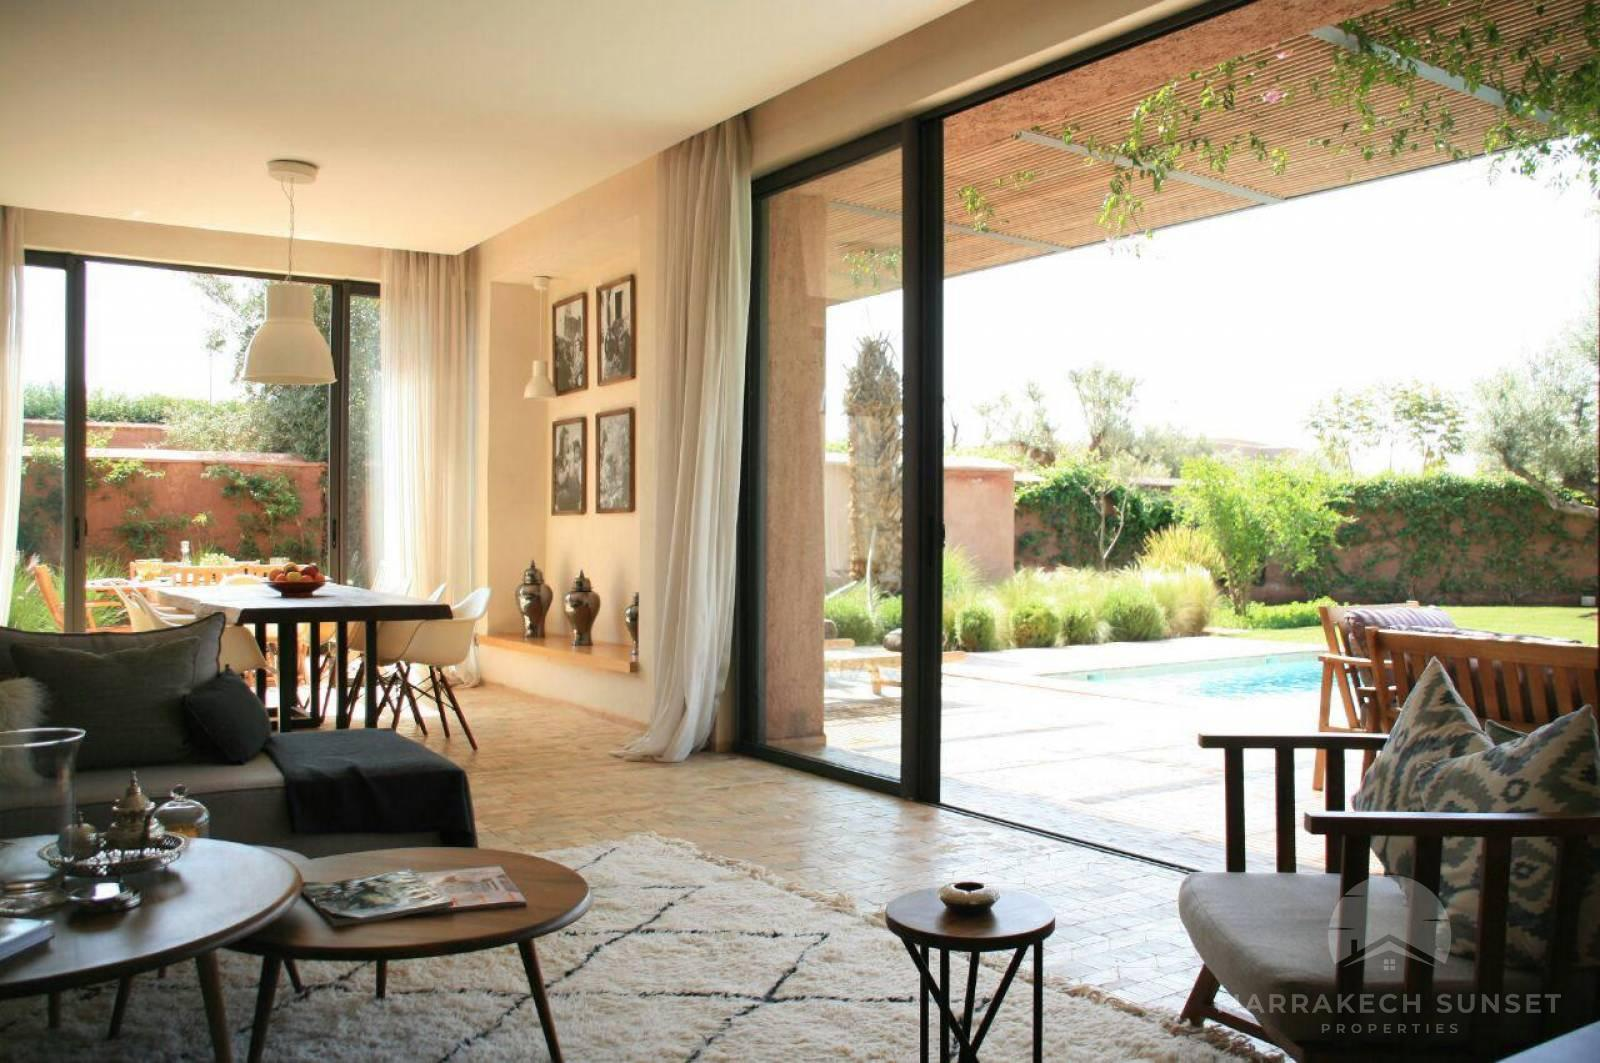 Luxury villa for sale located in one of the most prestigious residential & golf complex in Marrakech.